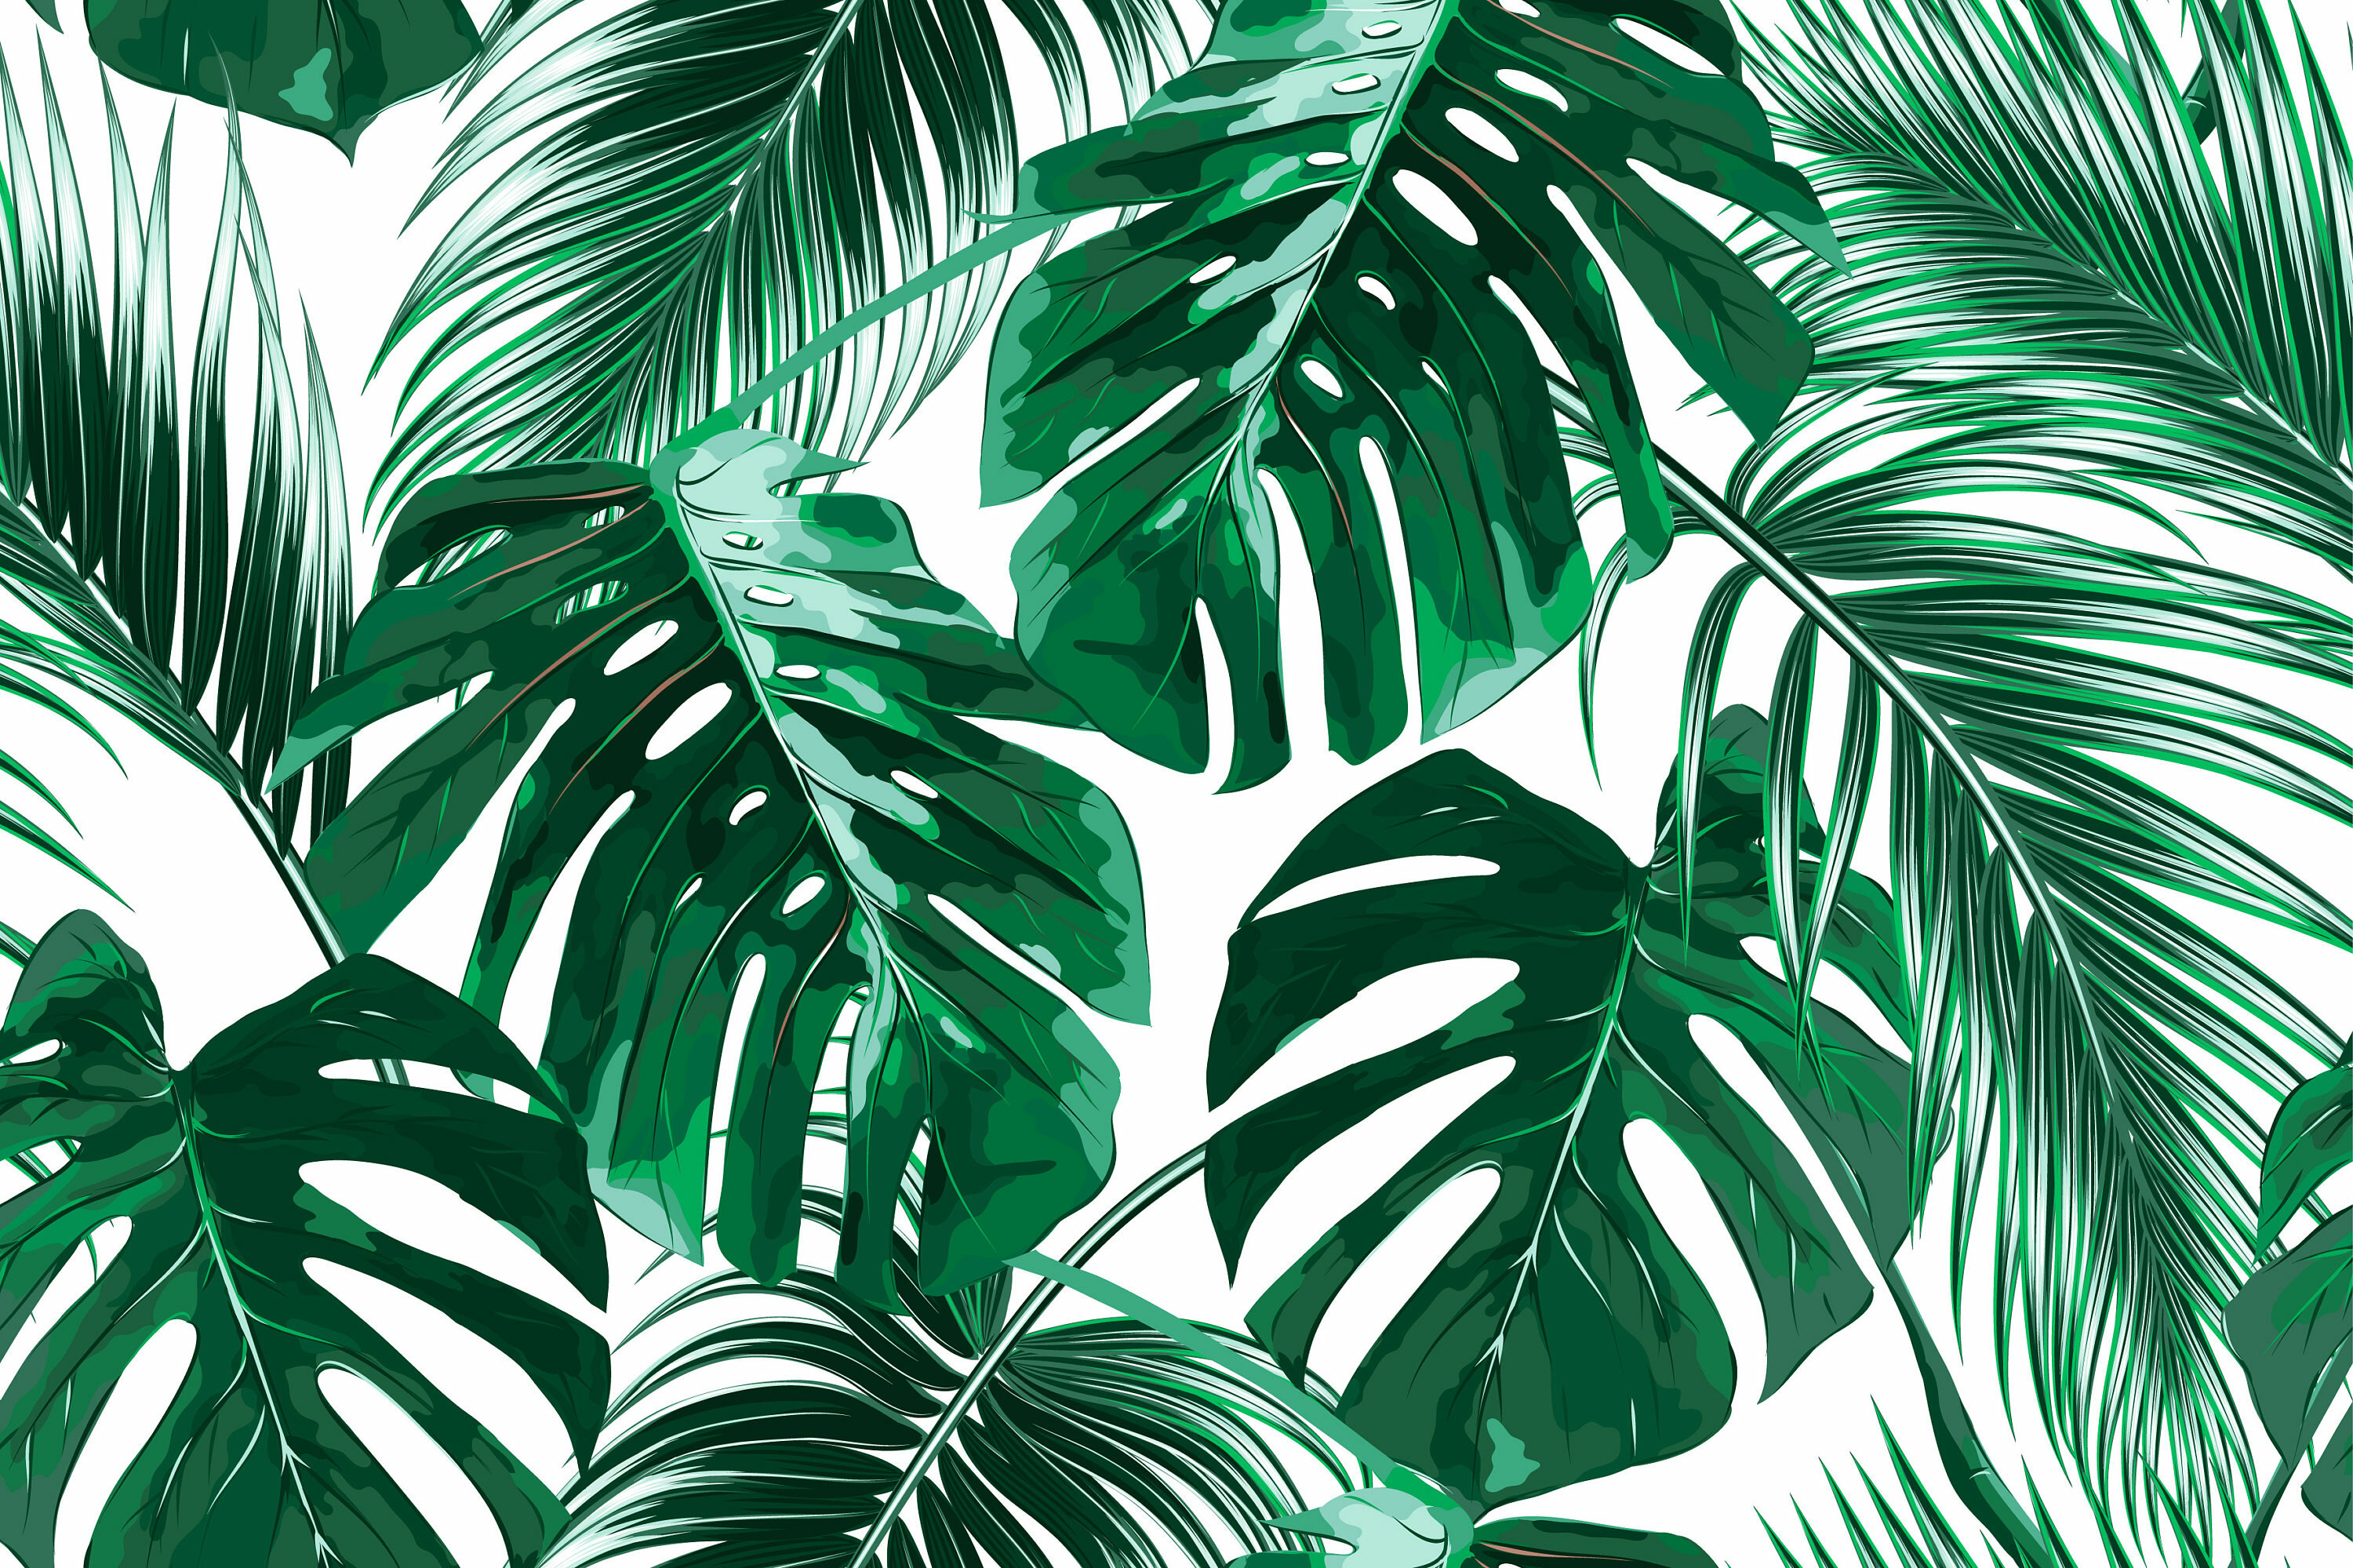 Bay Isle Home Joana Removable Tropical Palm Leaves 7 92 L X 150 W Peel And Stick Wallpaper Roll Wayfair Find the perfect tropical leaves stock photo. joana removable tropical palm leaves 7 92 l x 150 w peel and stick wallpaper roll